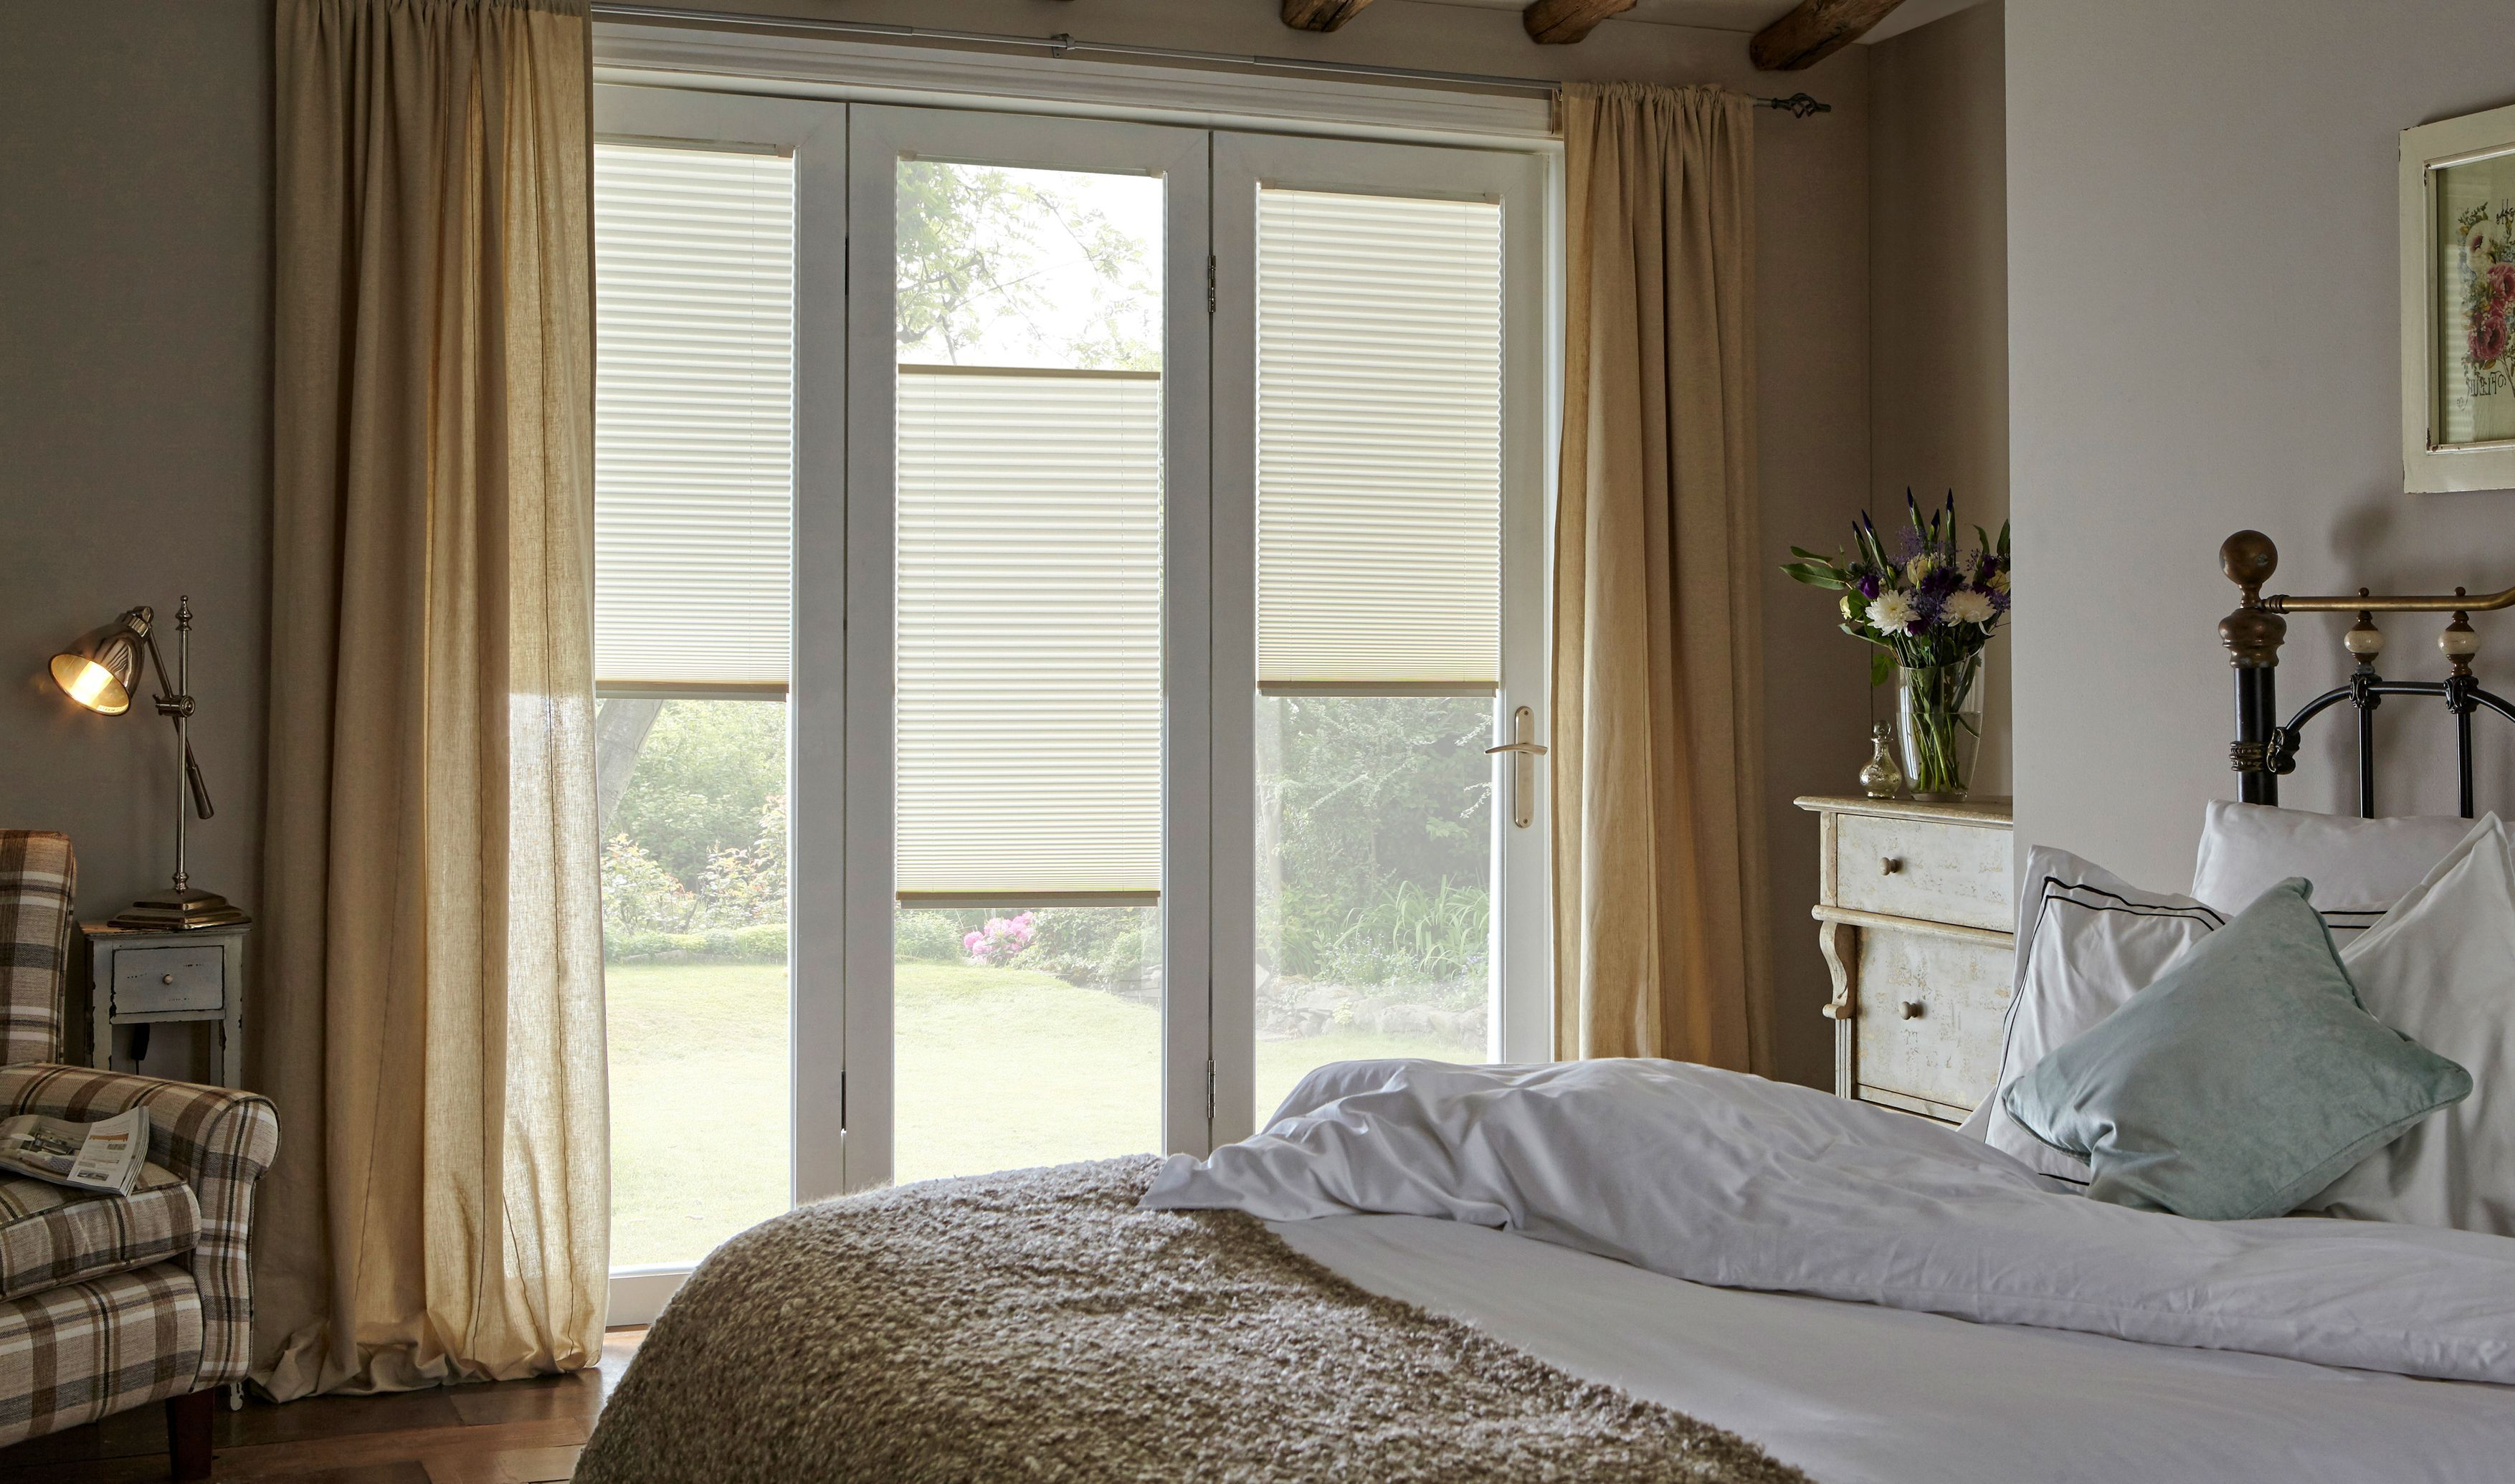 Pleated Bedroom Blinds From Style Studio Neutral Window Blinds Best Blinds For Summer Bedroom Blinds Living Room Blinds Blinds Design Curtains With Blinds